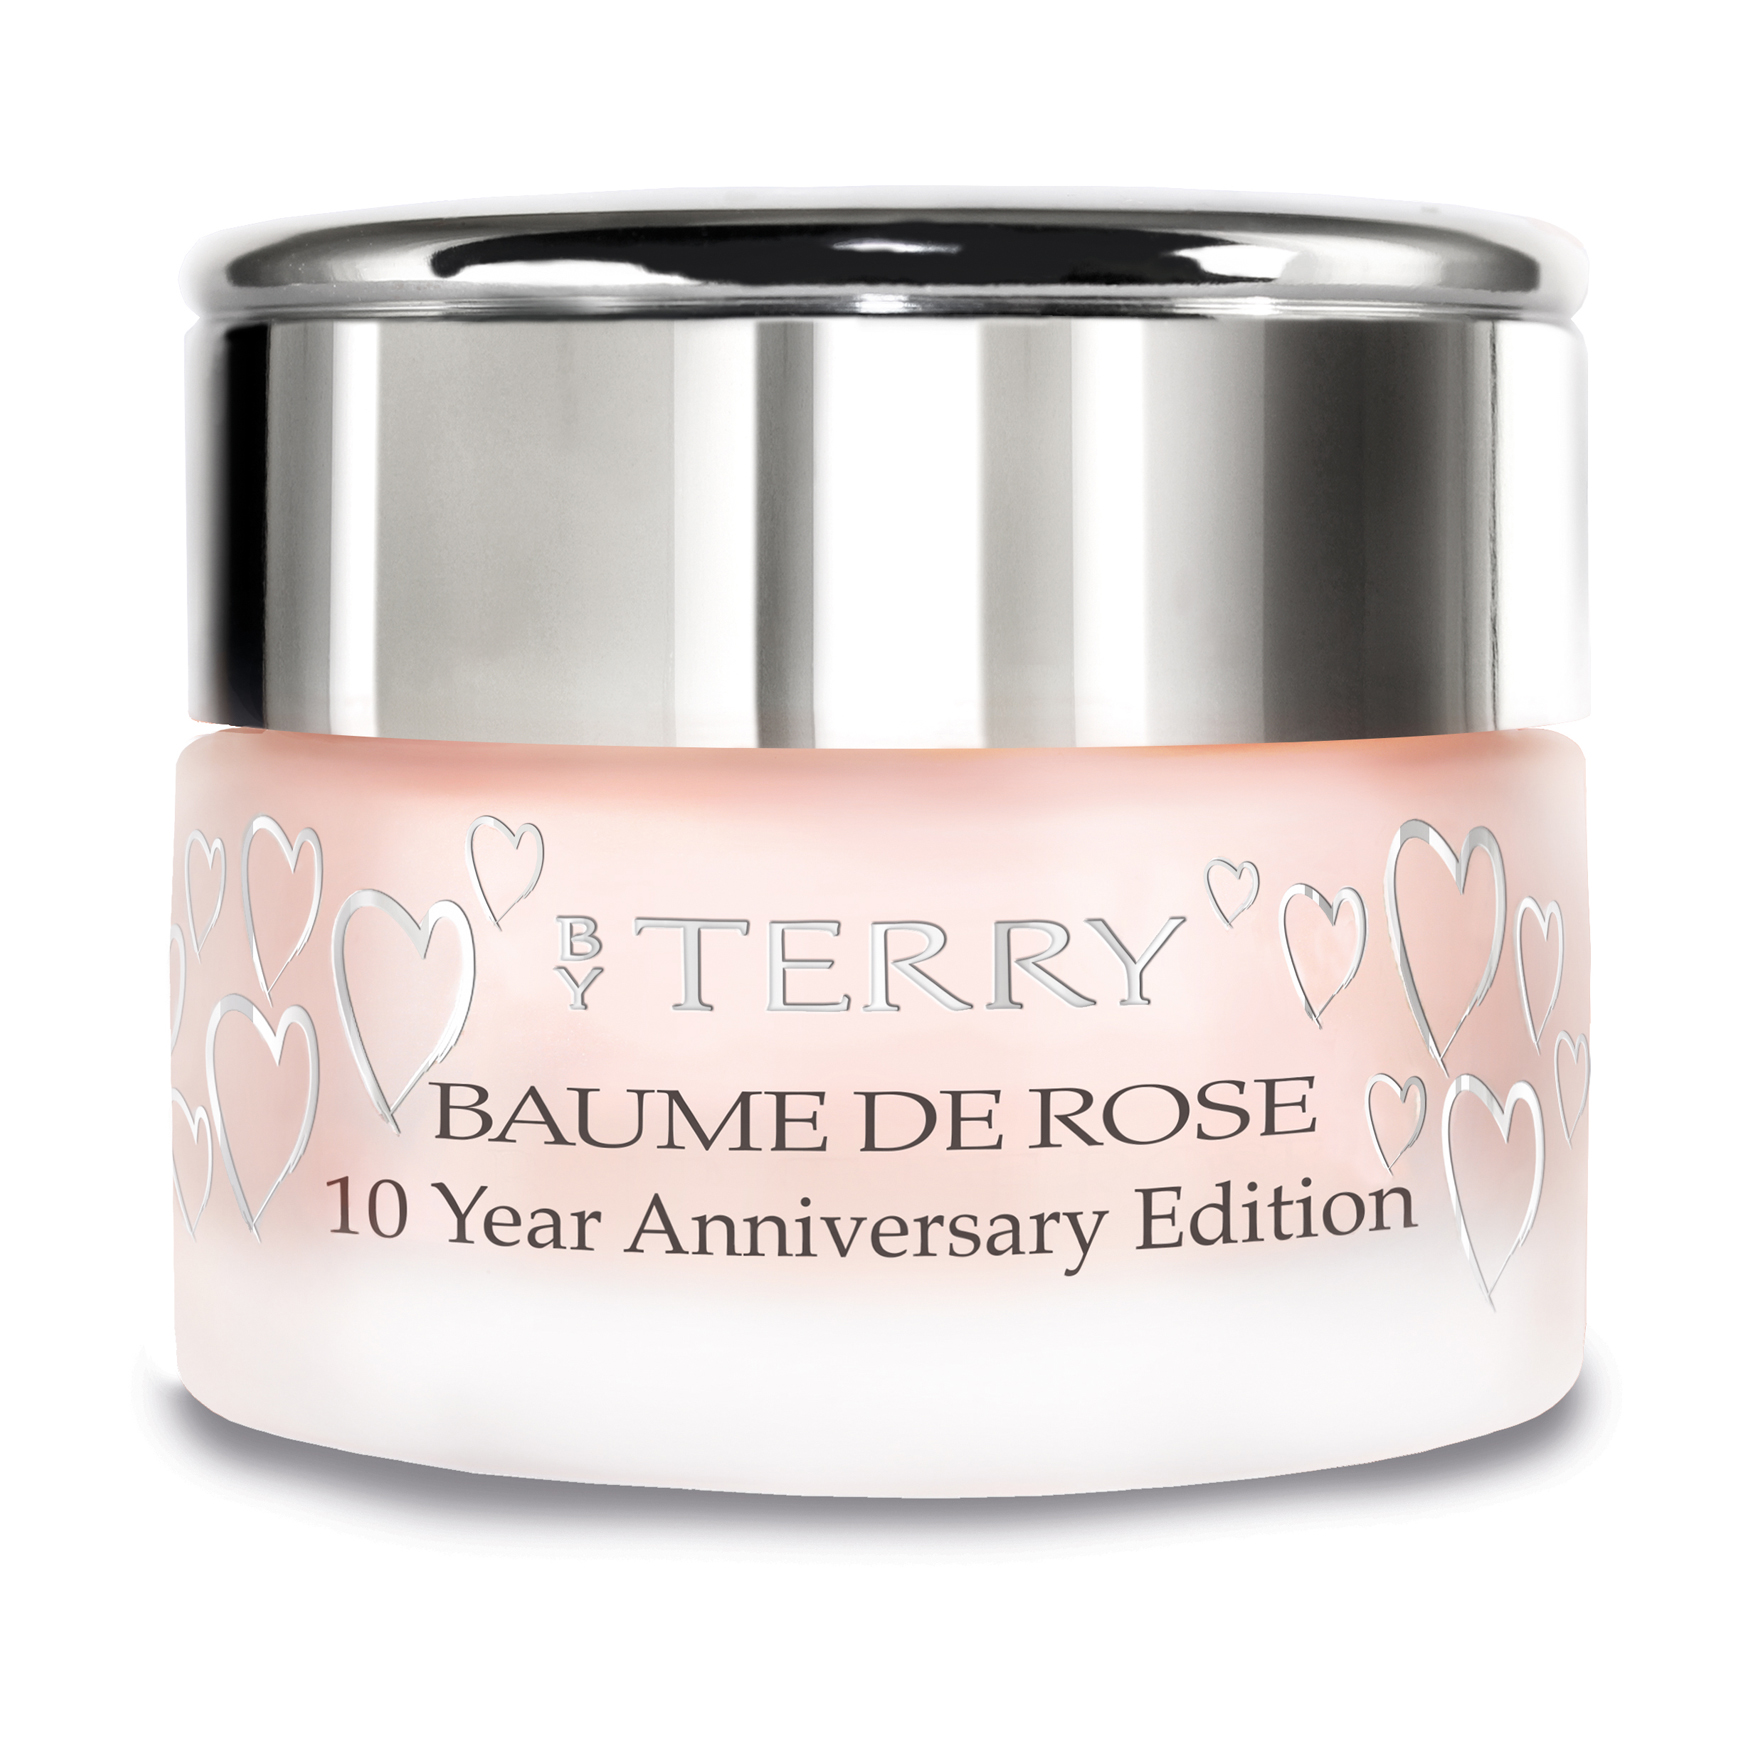 BY TERRY – Baume De Rose